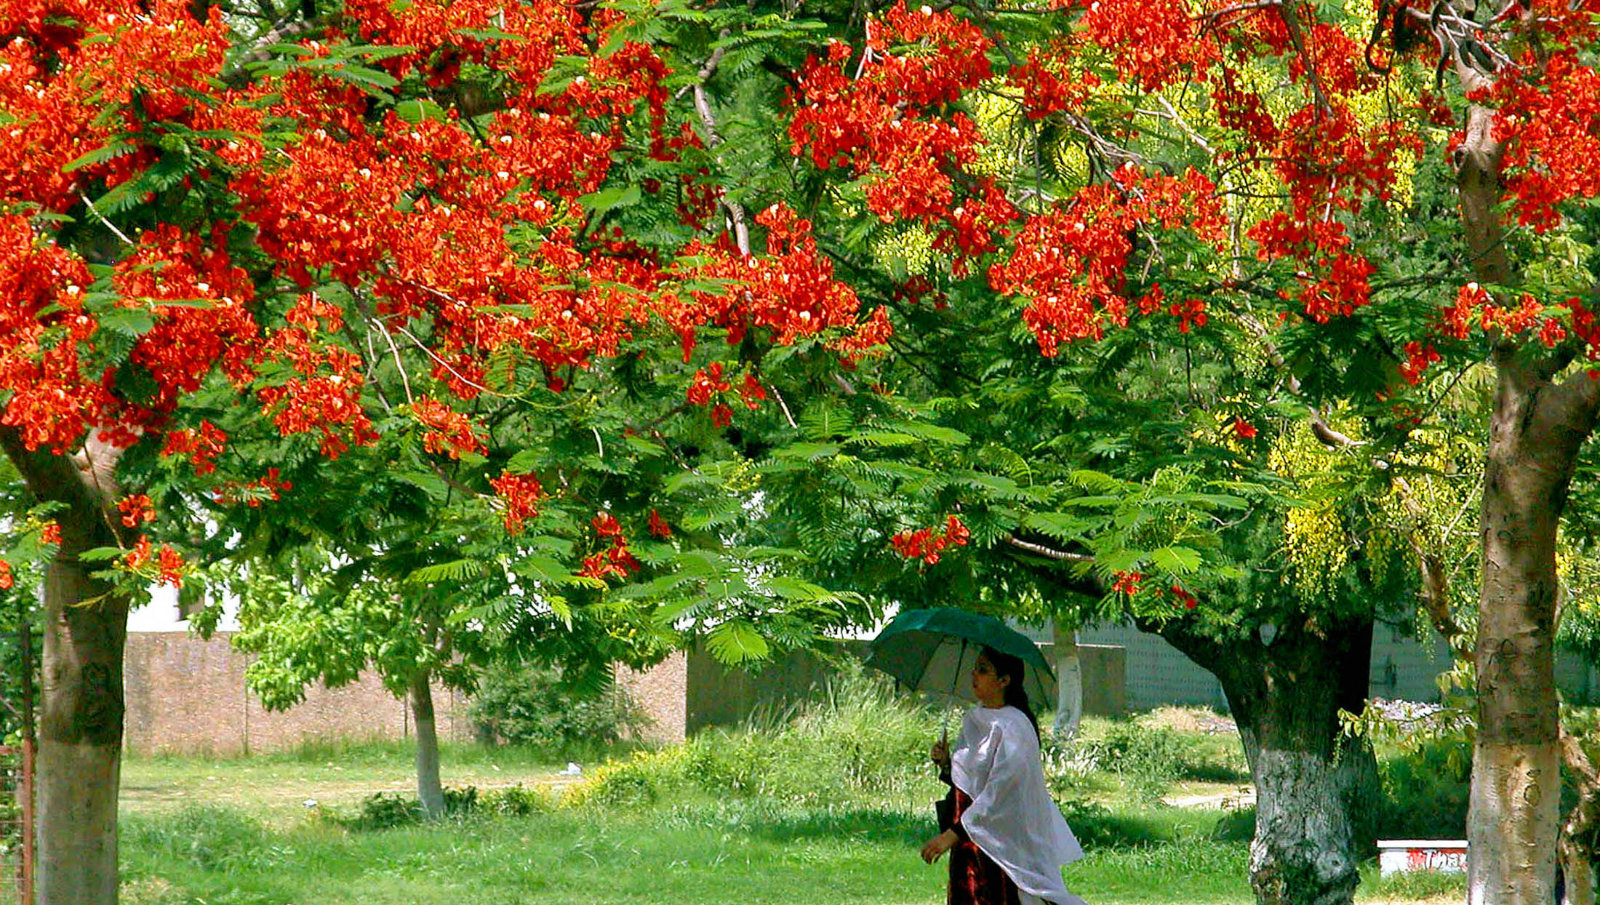 An Indian woman walks under the shadows of Gulmohar trees on a hot day in the northern Indian city of Jammu, May 24, 2005. With the onset of summer, many parts of India are facing heat wave conditions when the day's maximum temperature crosses over 40 degrees Celsius (104 degrees Fahrenheit).